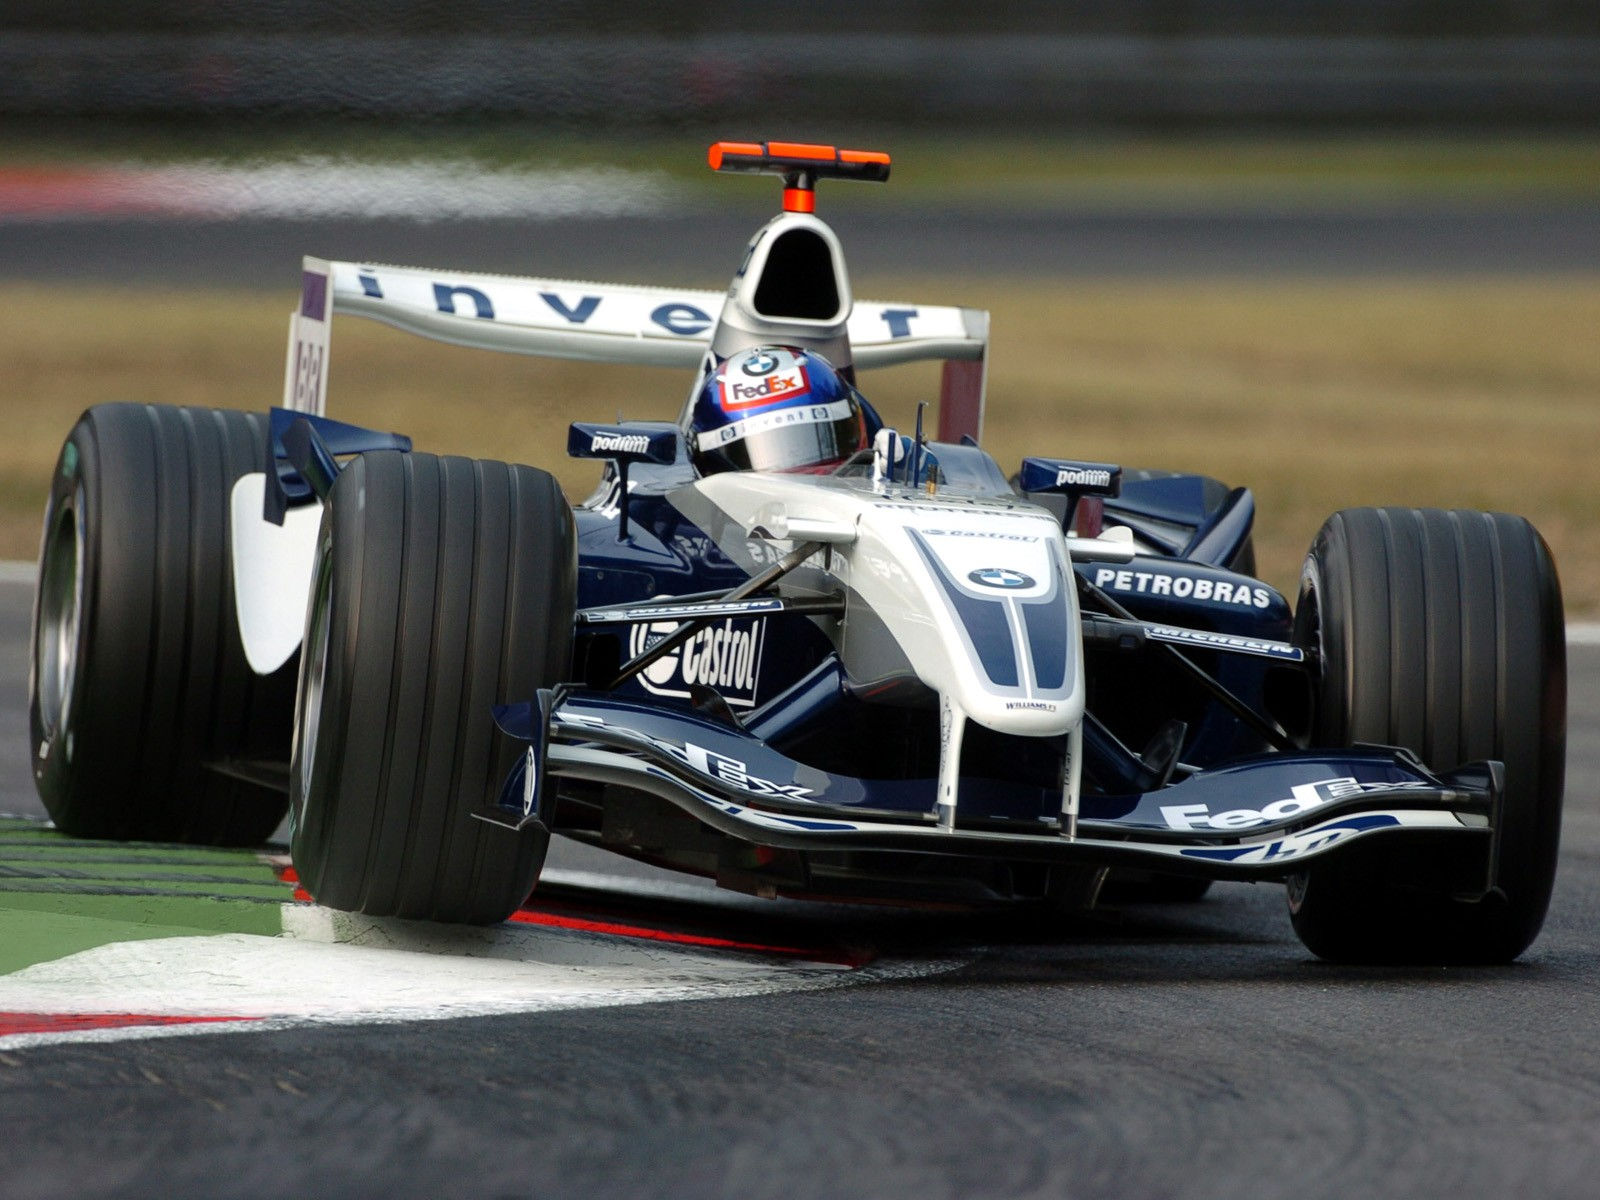 Williams BMW V10 FW26B 2004